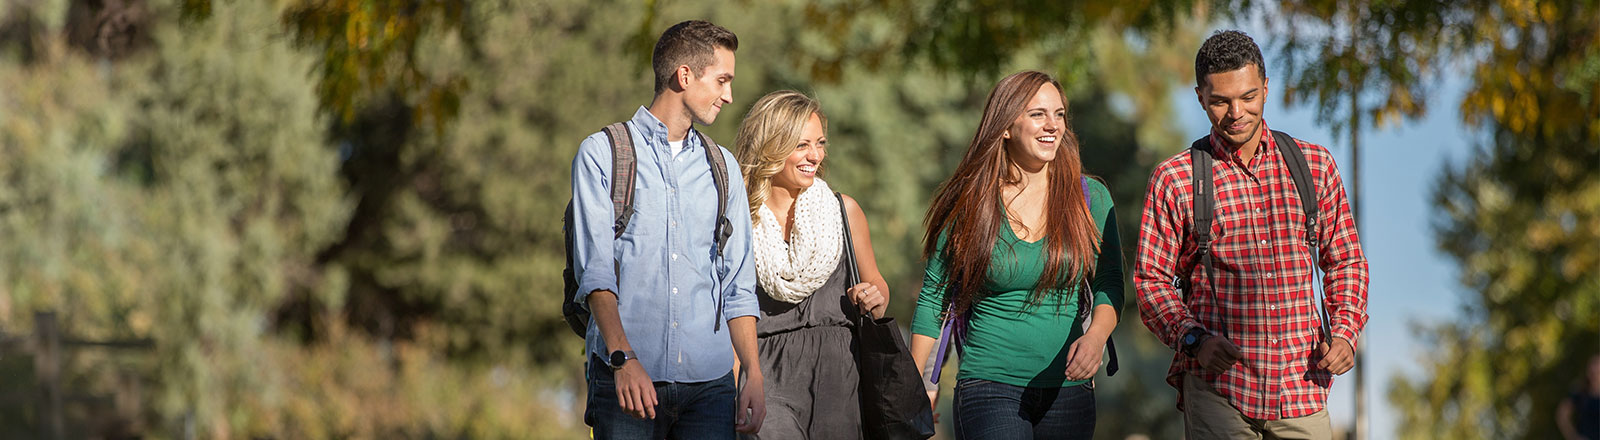 Students walking safetly on campus